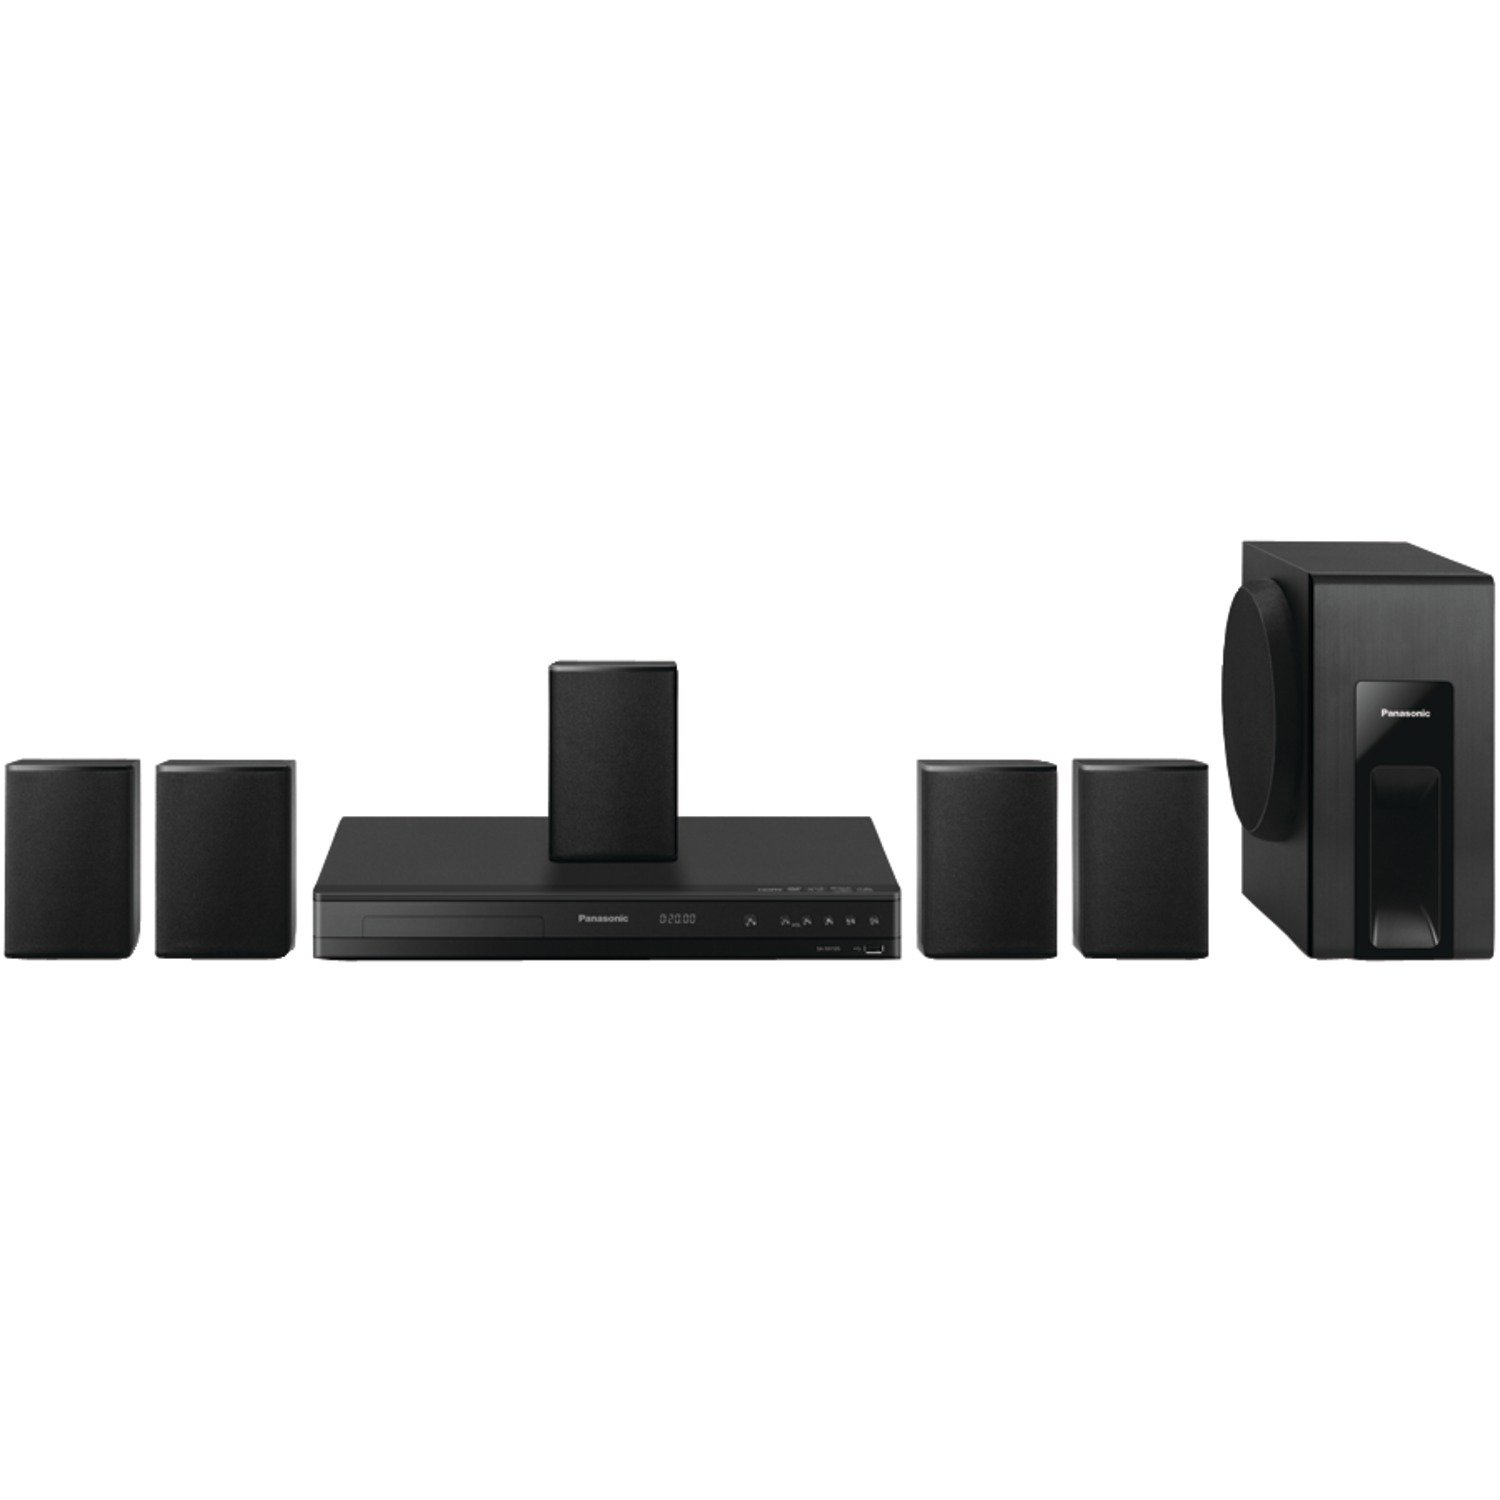 Panasonic Home Theater System SC-XH105 (Black) 5.1 Surround Sound, Upconvert DVDs to 1080p Detail by Panasonic